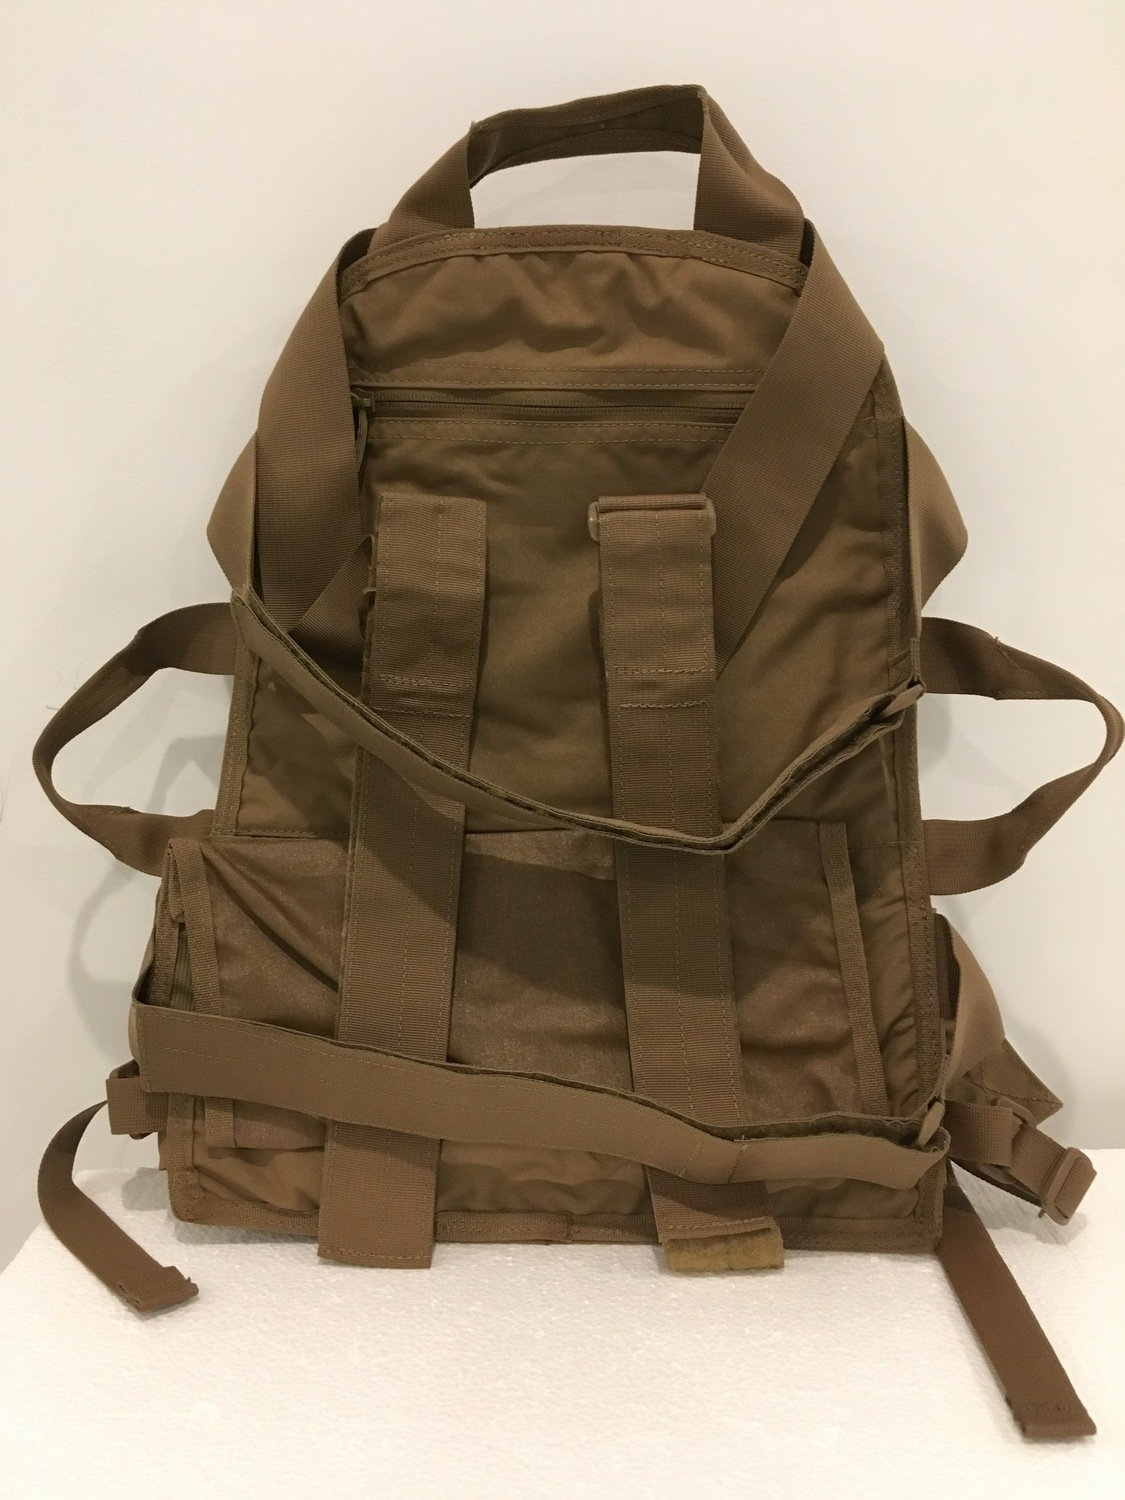 Mantis Backpack System Coyote Brown/Tan - Tax Exempt